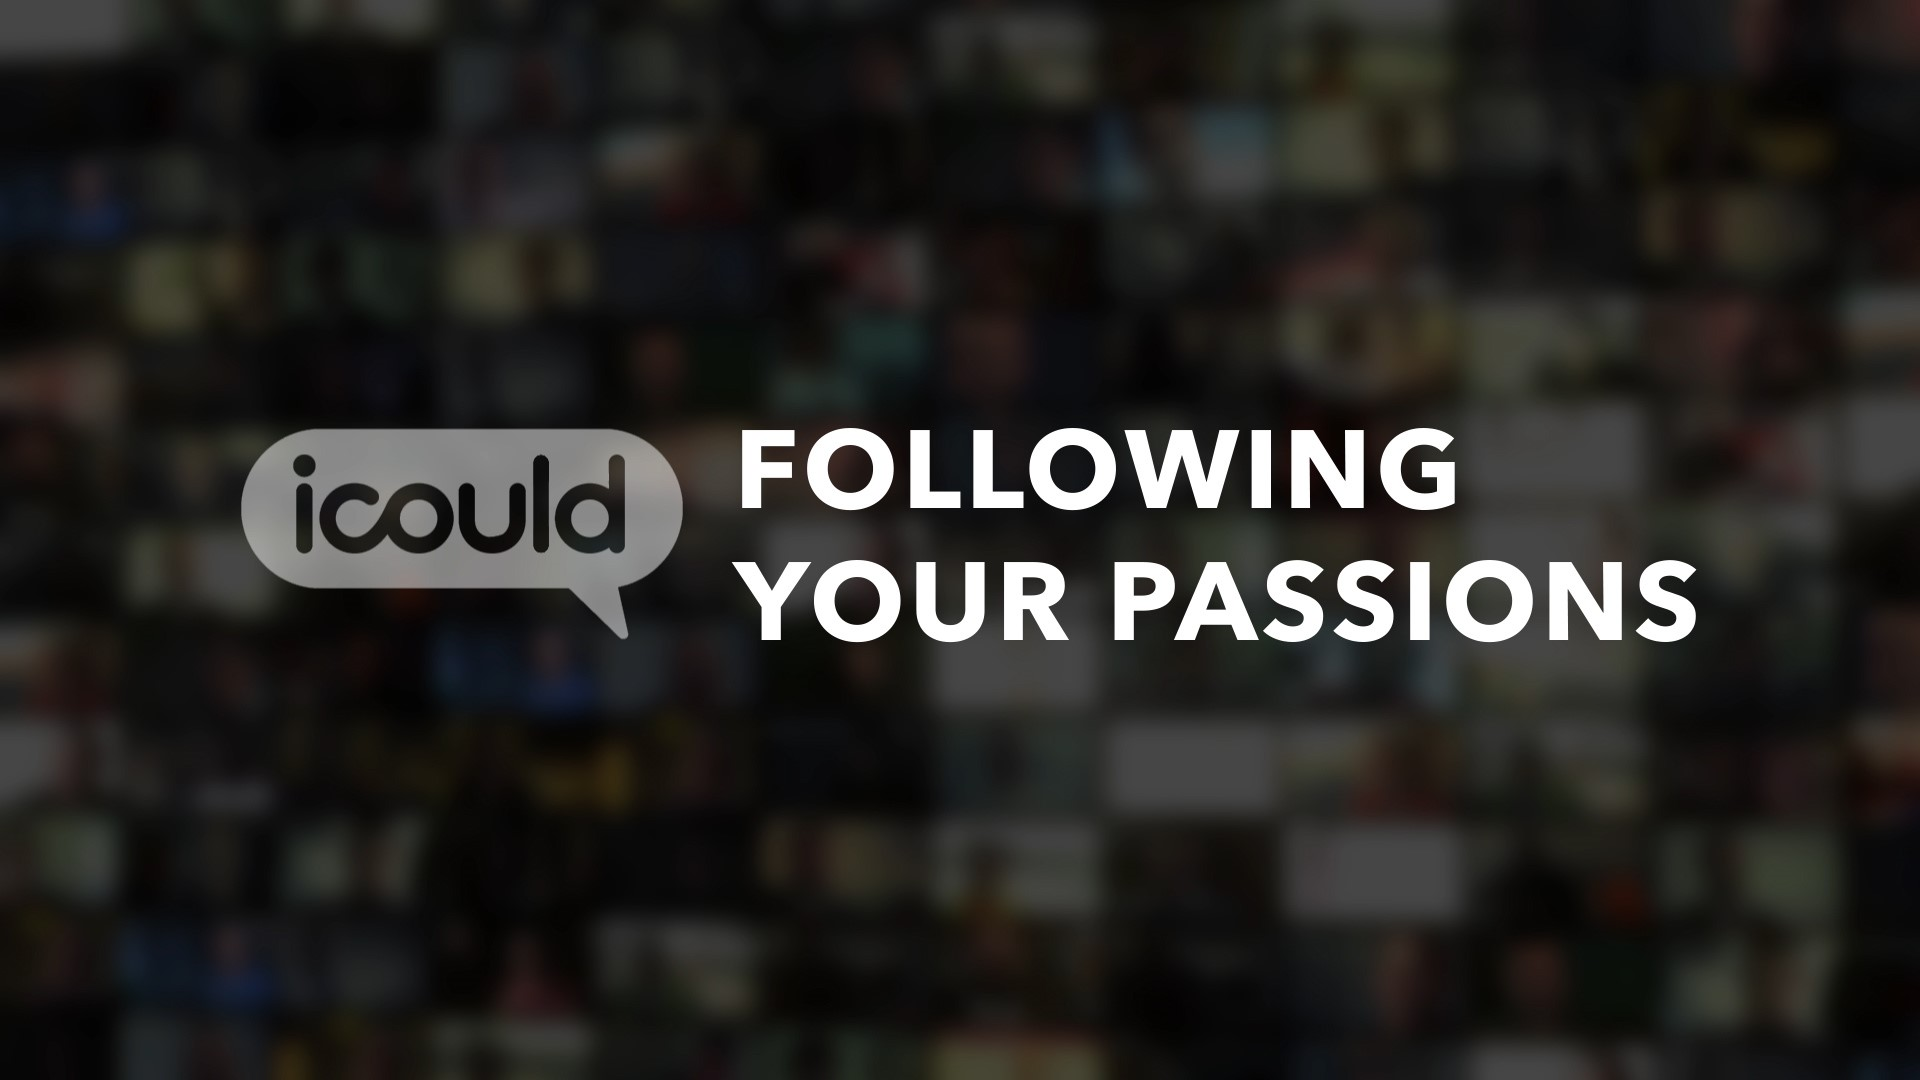 Following your passions logo